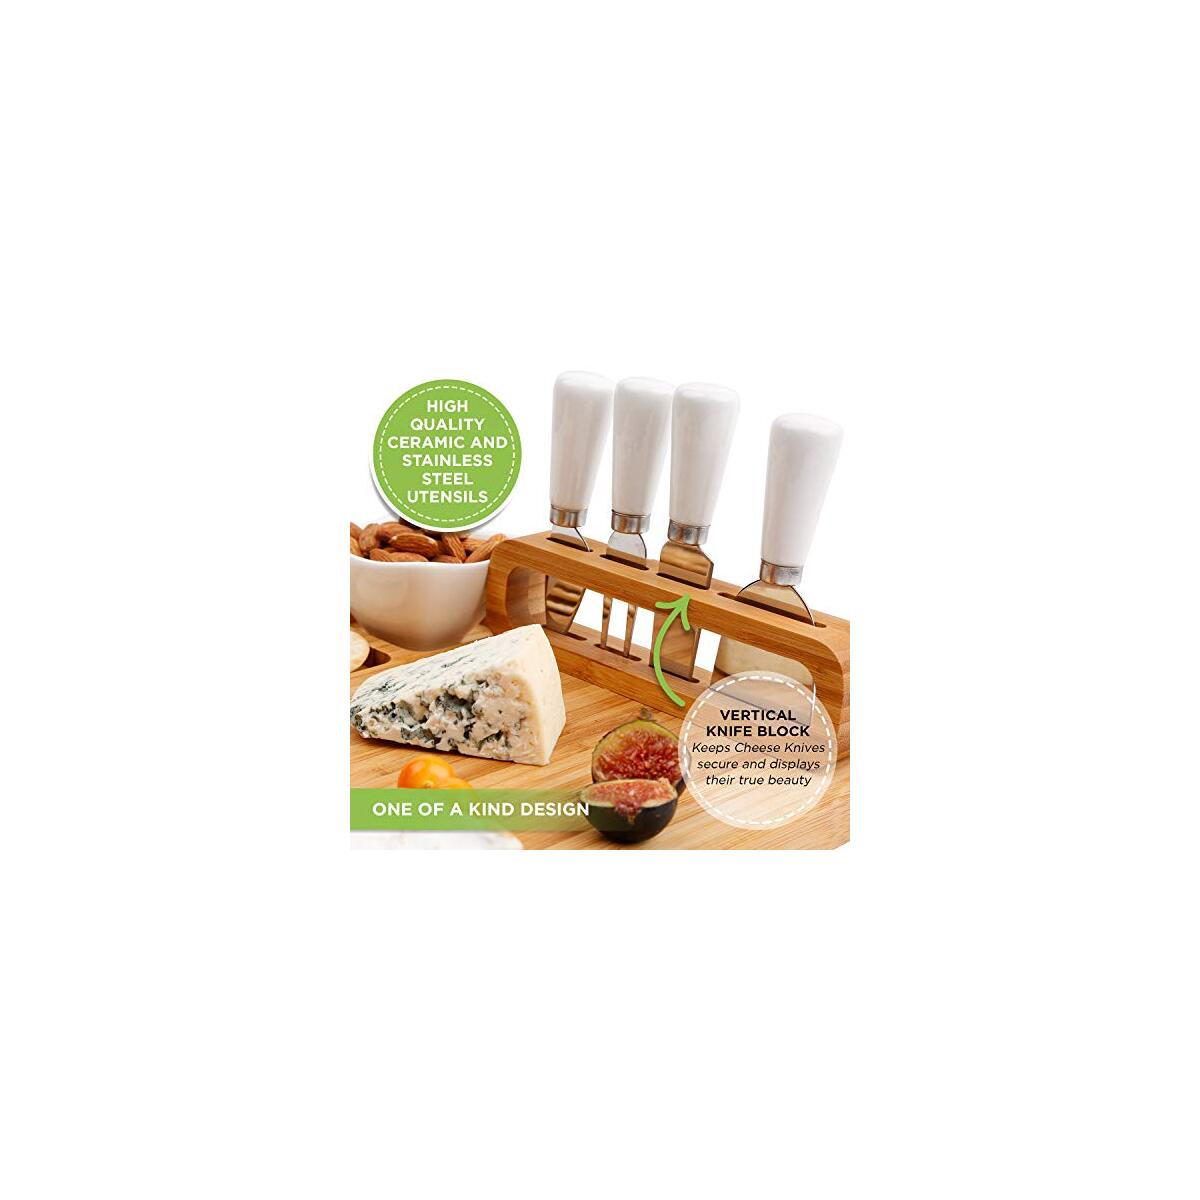 Bamboo Cheese Board and Knife Set, Charcuterie Board Set Large (14 x 11 inch) includes Ceramic Bowl, Serving Forks, Cheese Knives, Ideal Wedding Gift, Housewarming, Anniversary, Birthday (The Padrona)